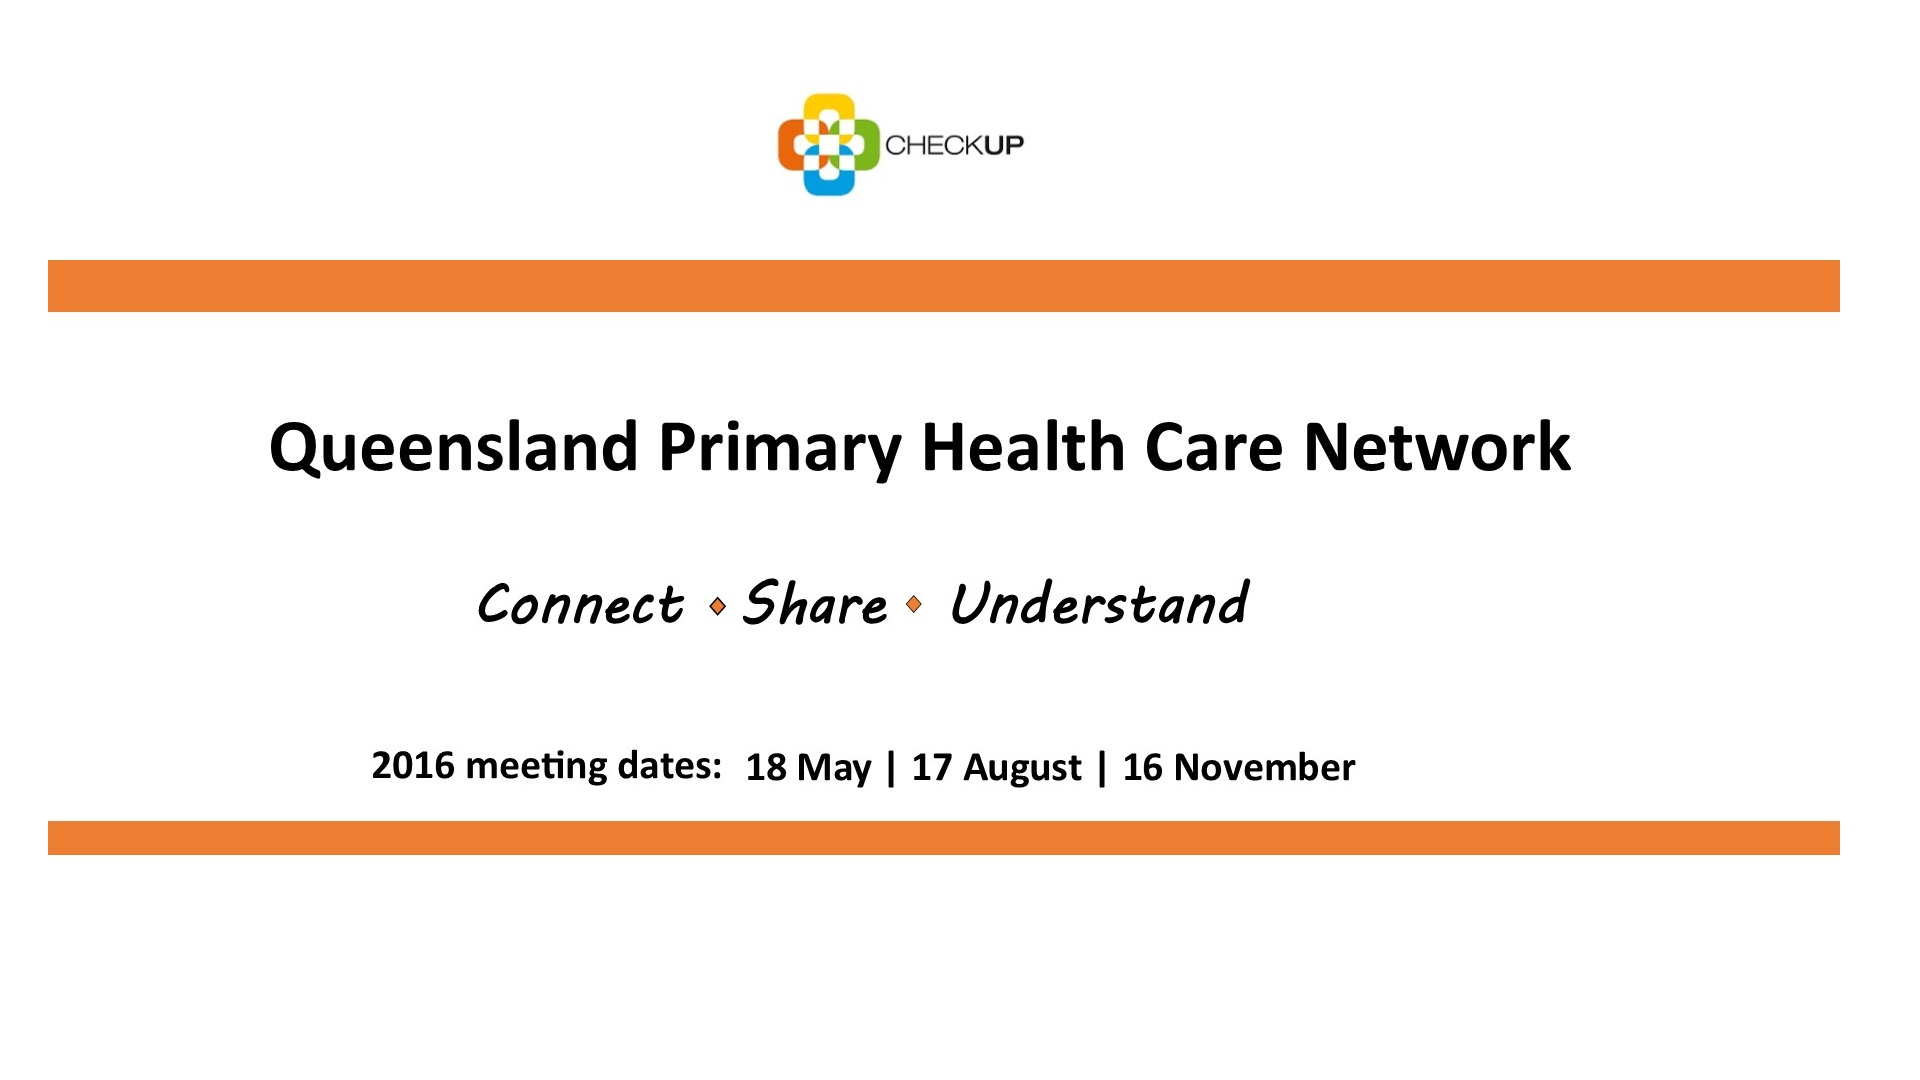 QPHCN Queensland Primary Health Care Network Meeting (18 May 2016)